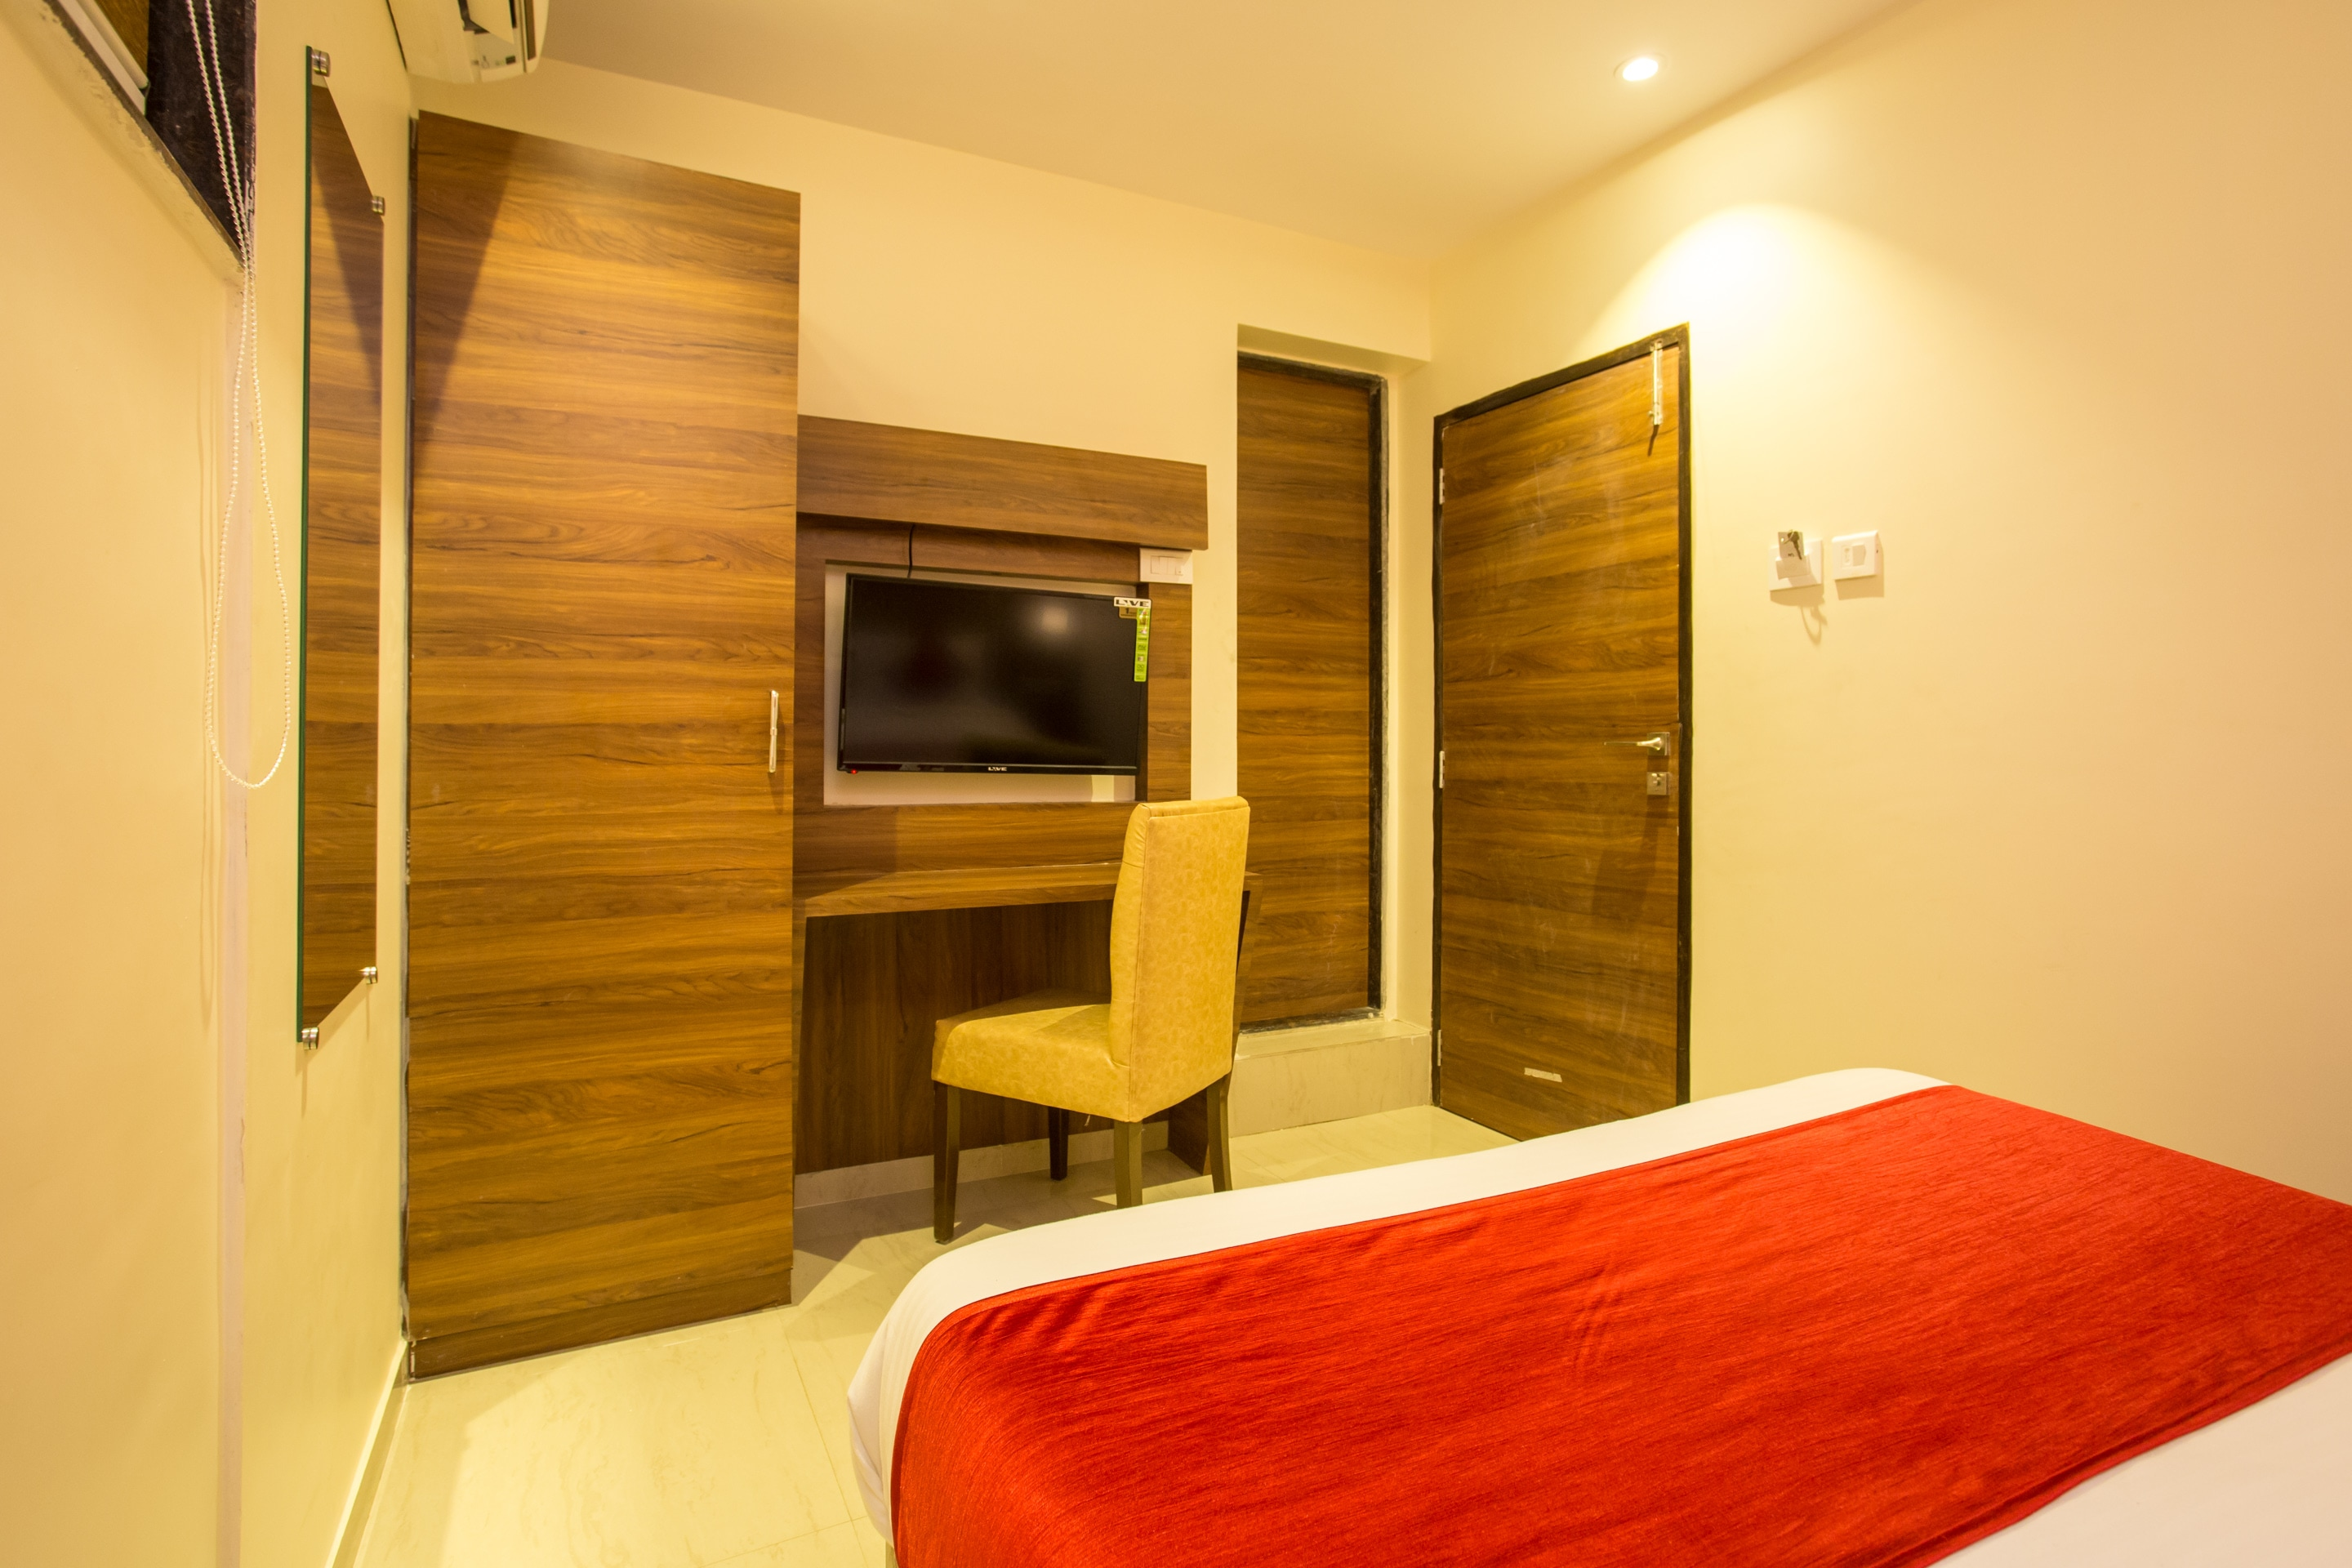 Hotels in and around thane mumbai upto 50% off book & pay at hotel